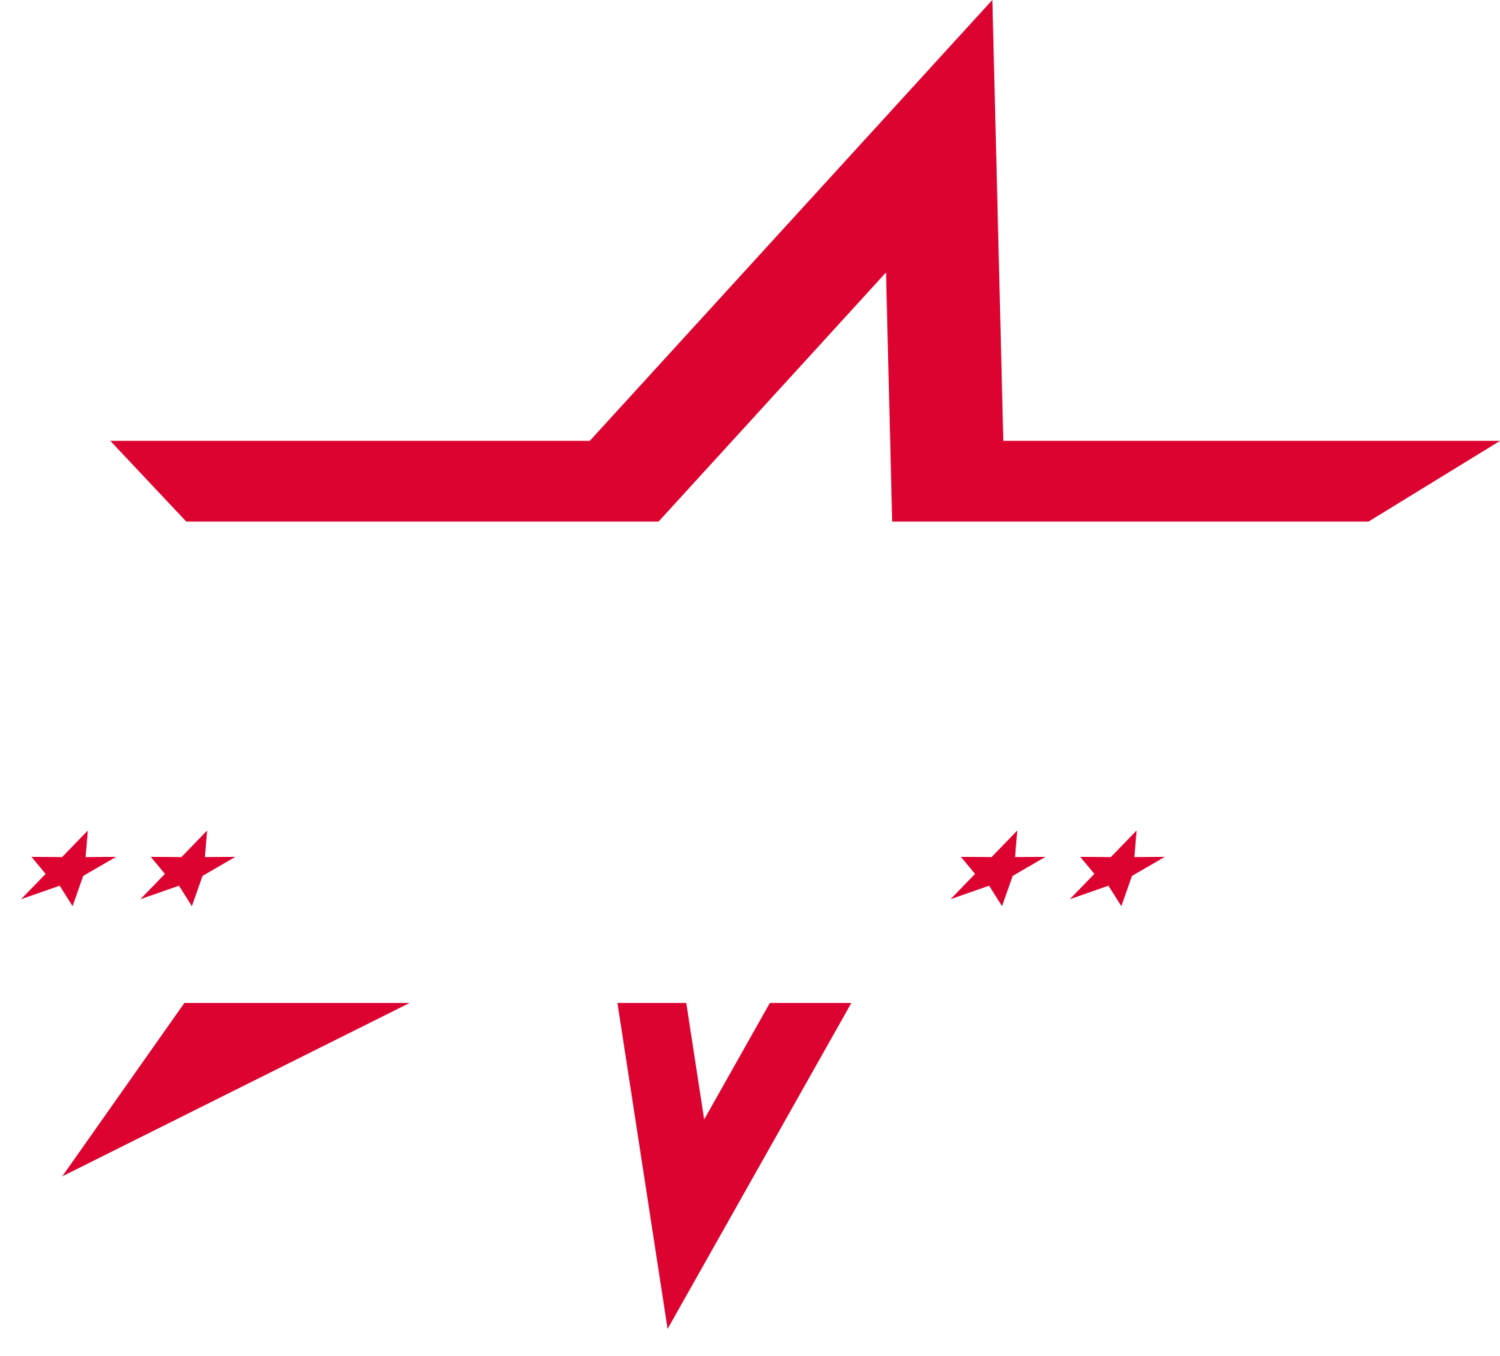 Long Beach Cyclery